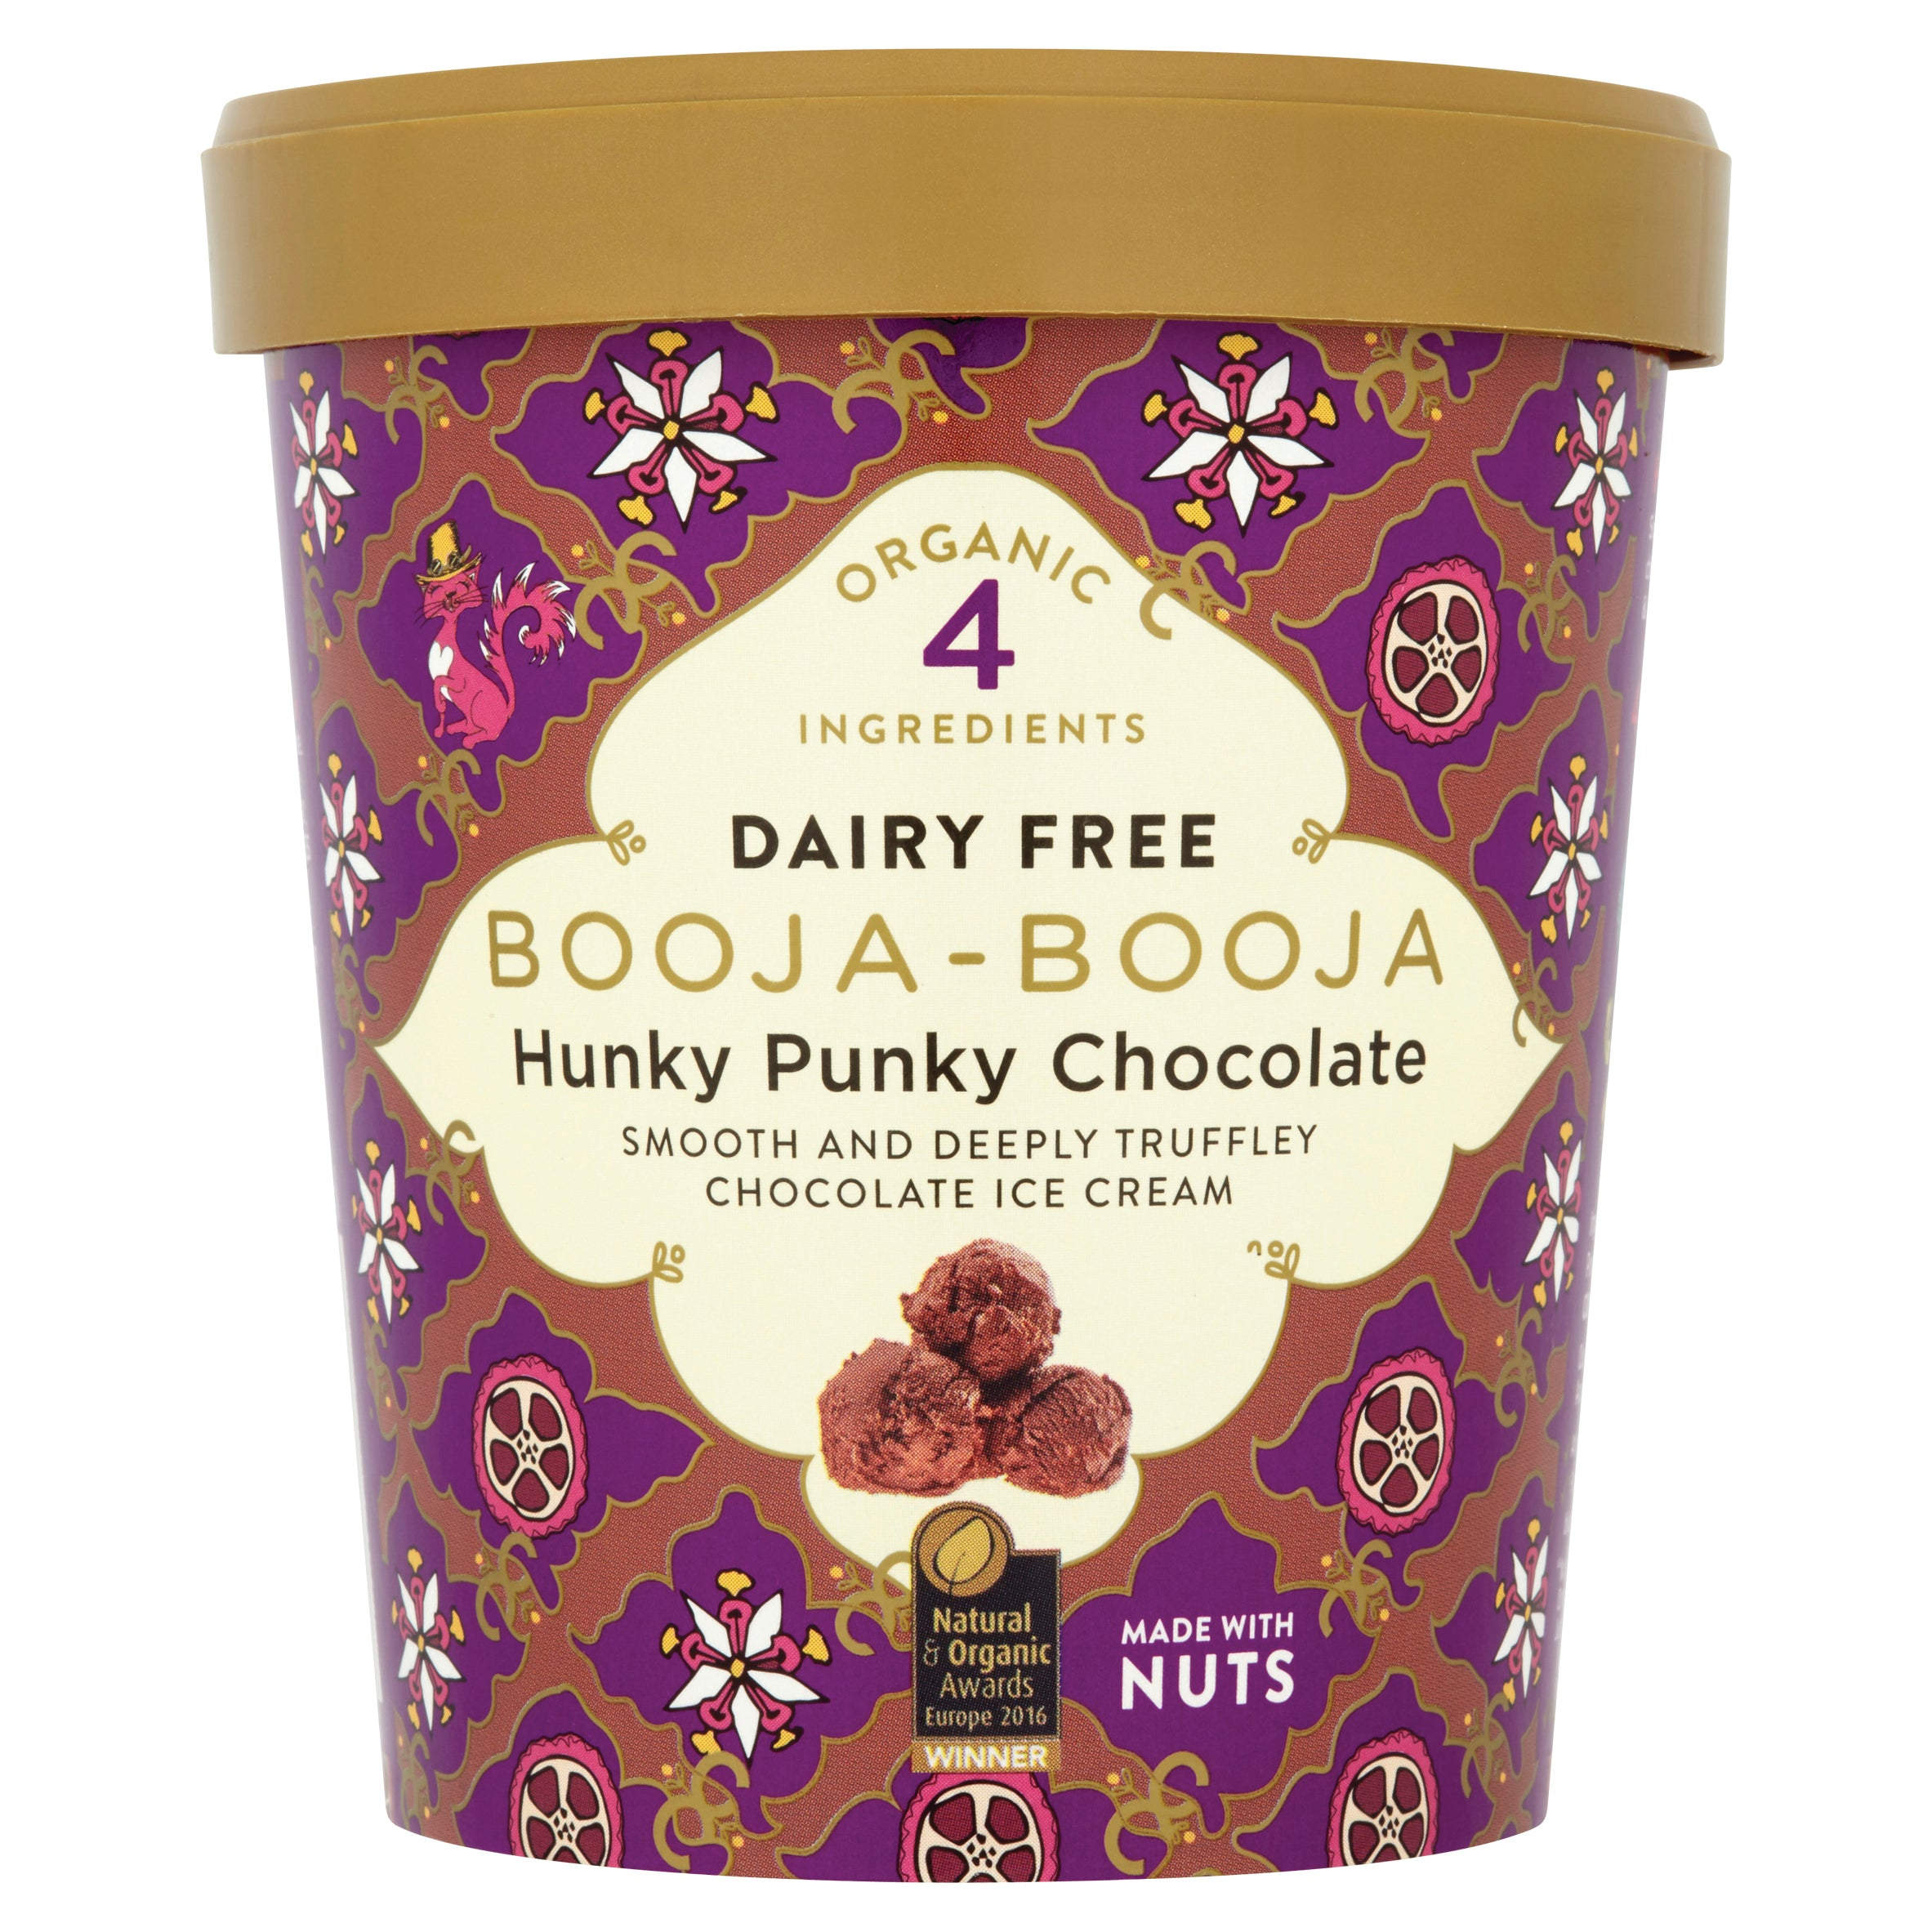 Booja-Booja Hunky Punky Chocolate ice cream